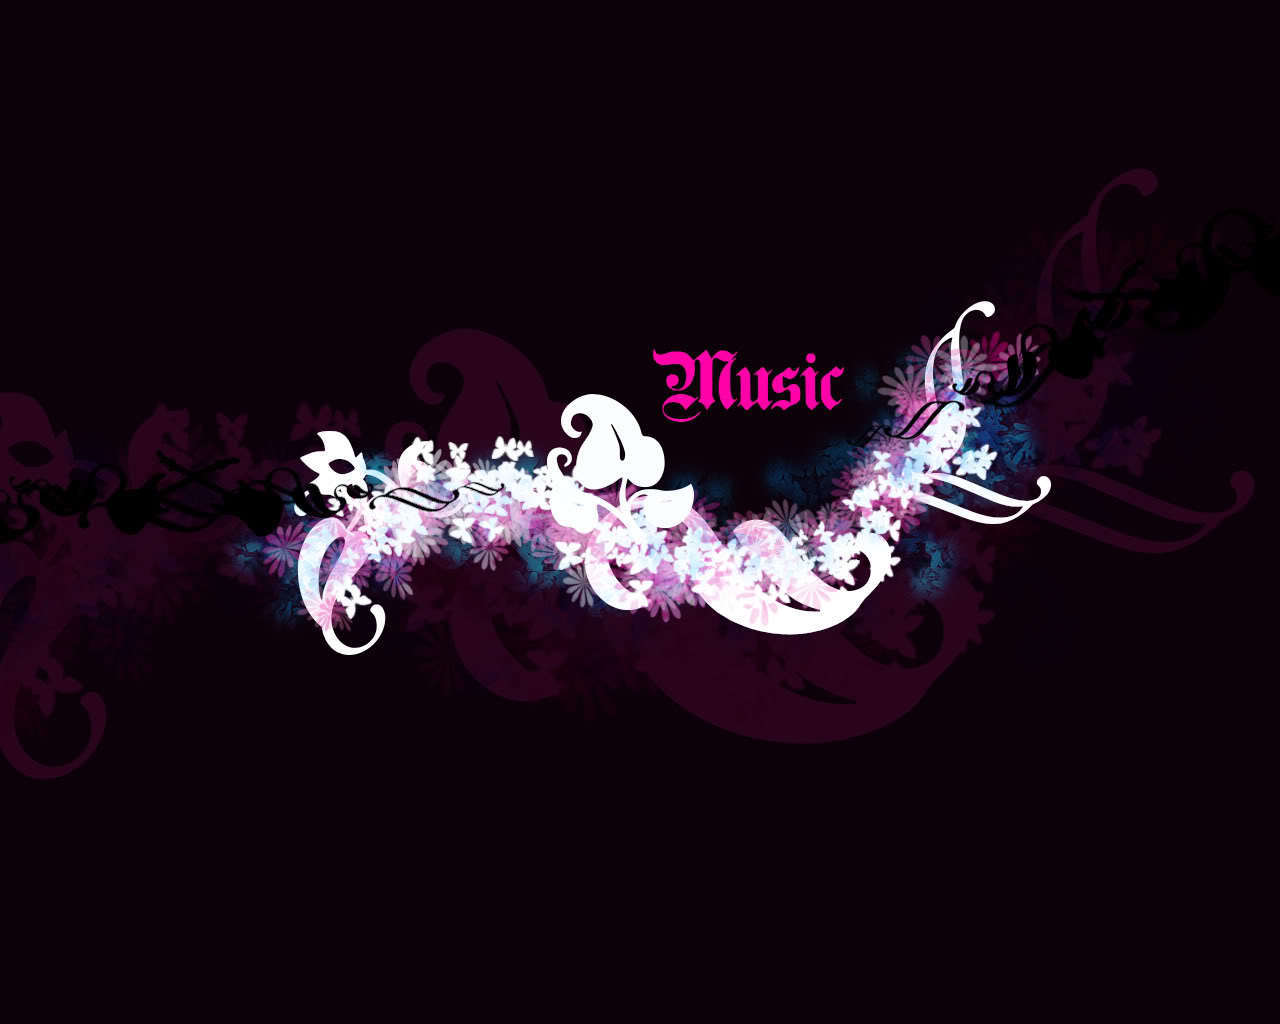 music♪♫ - Music Wallpaper (16510170) - Fanpop